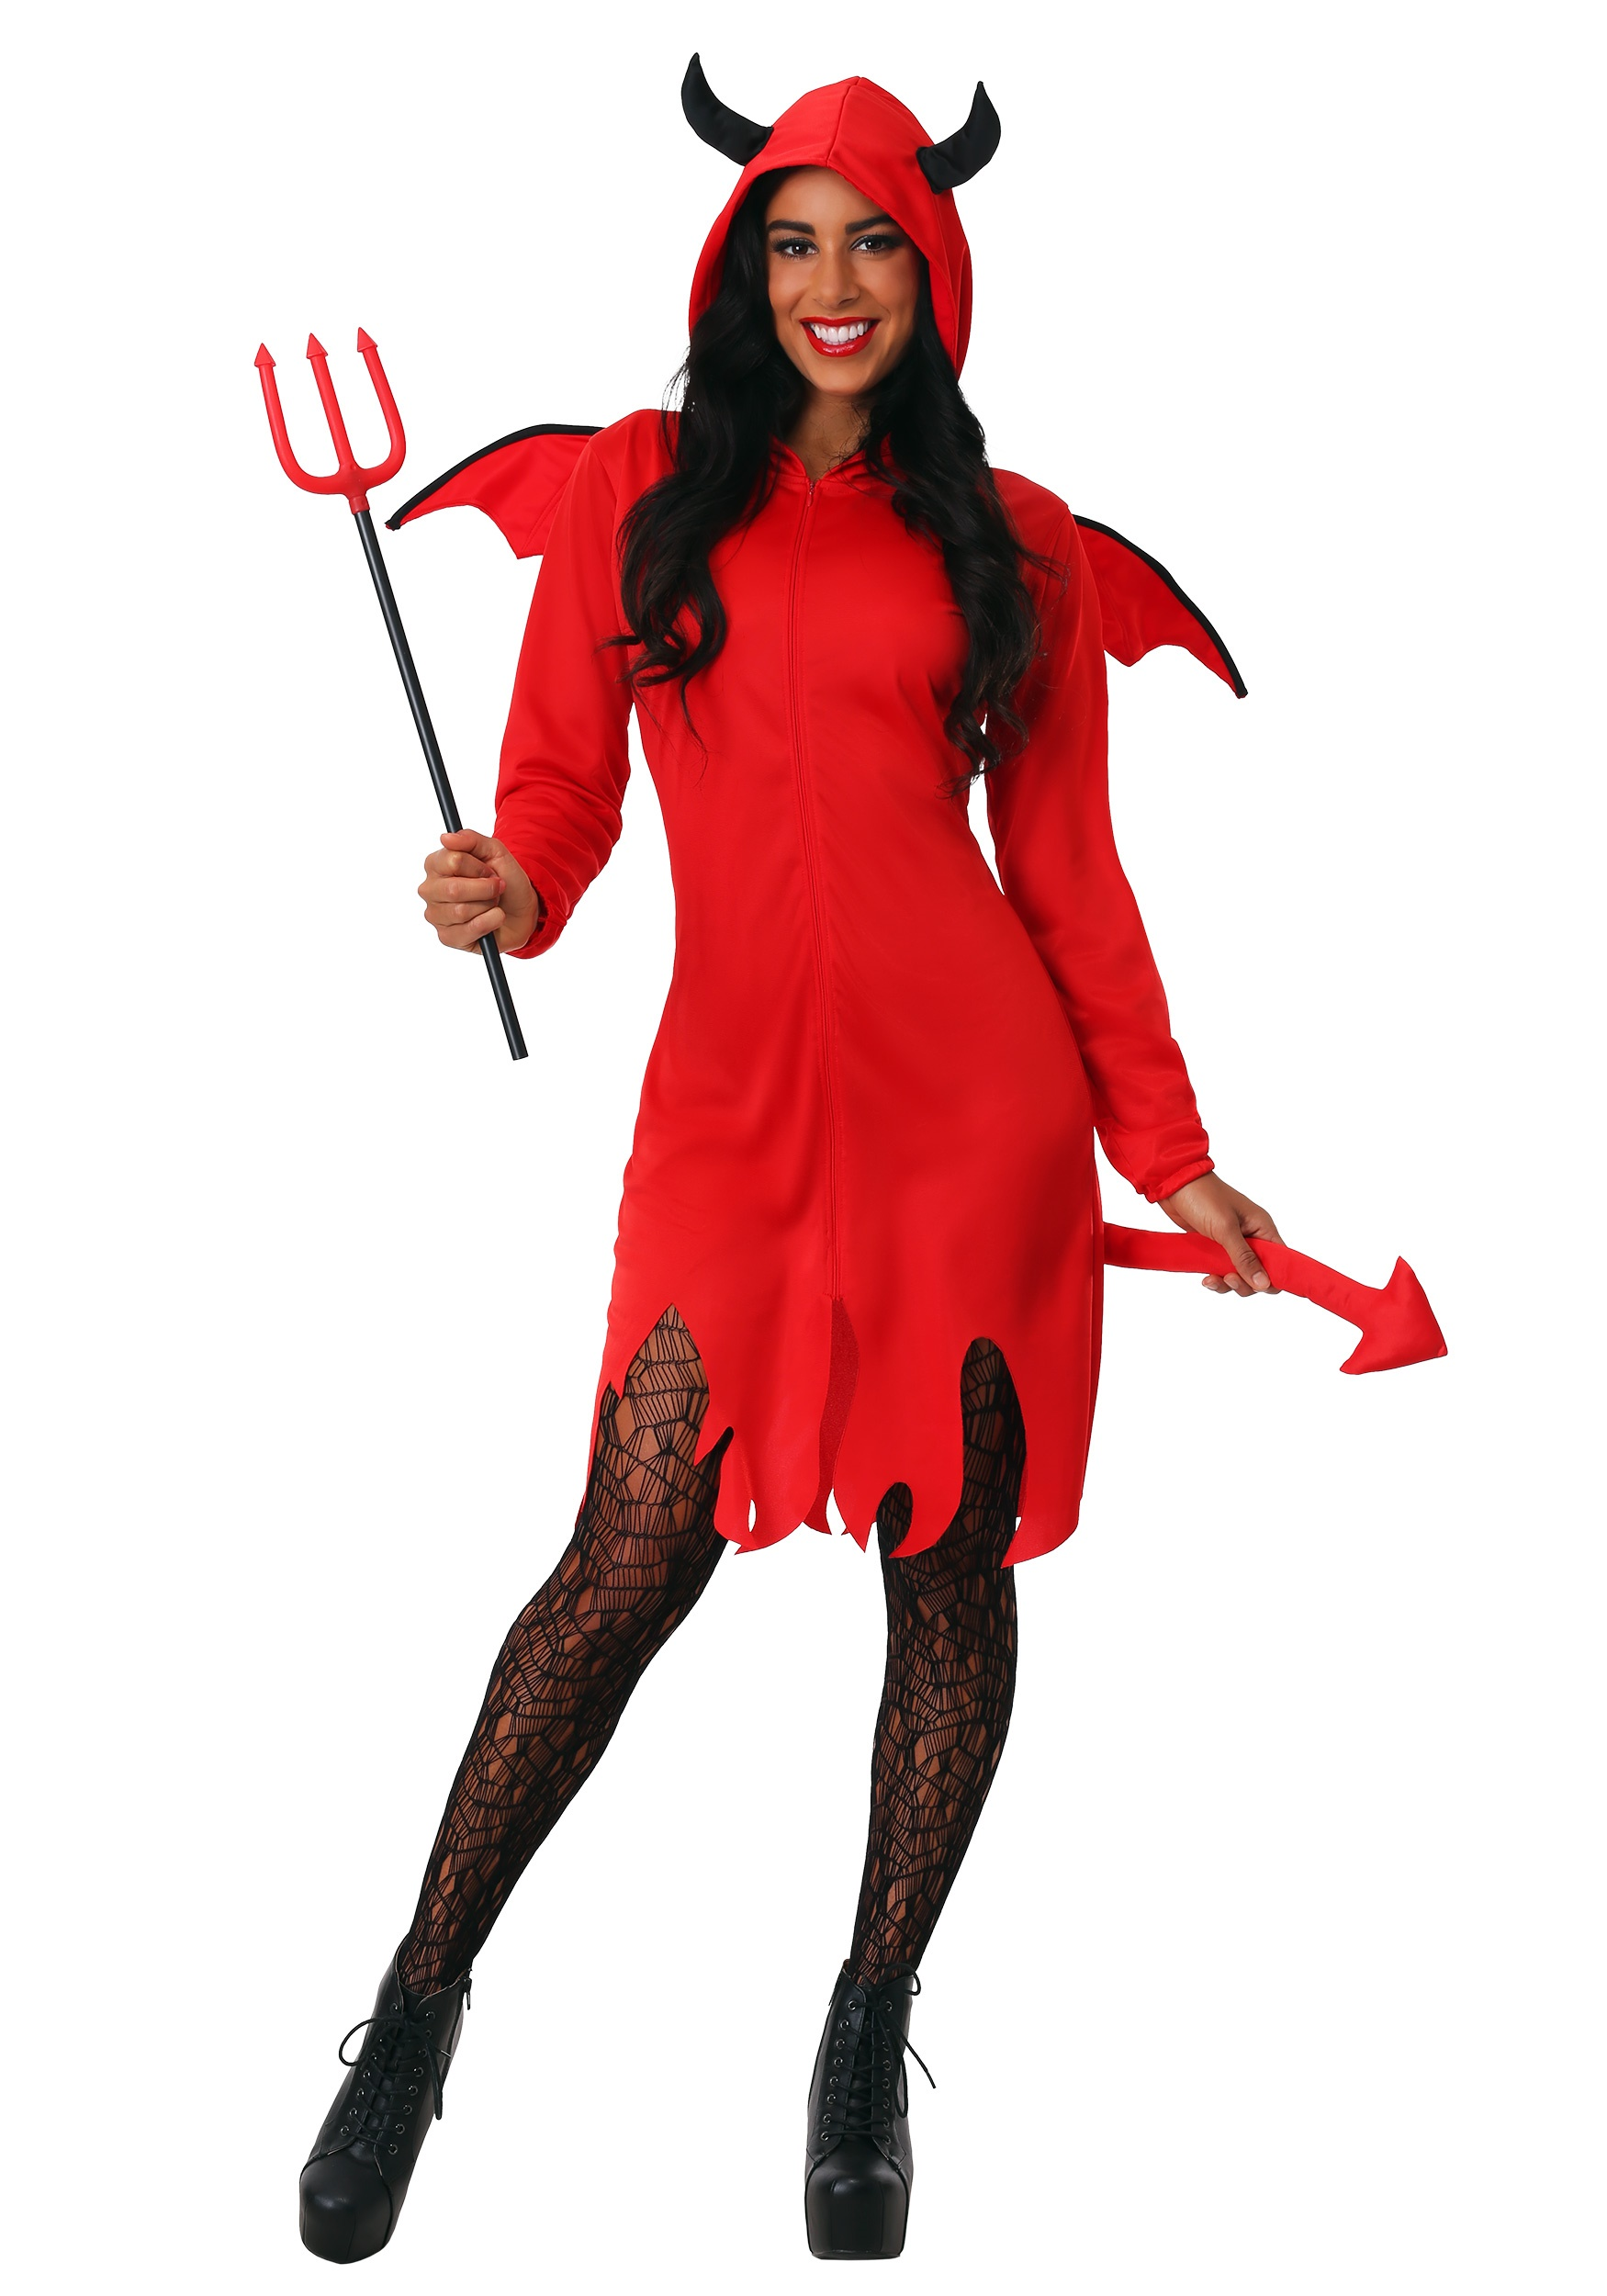 Kids Toy Costume for Party Cosplay Halloween Devils Pitch Fork with Handle Red 24 Inch